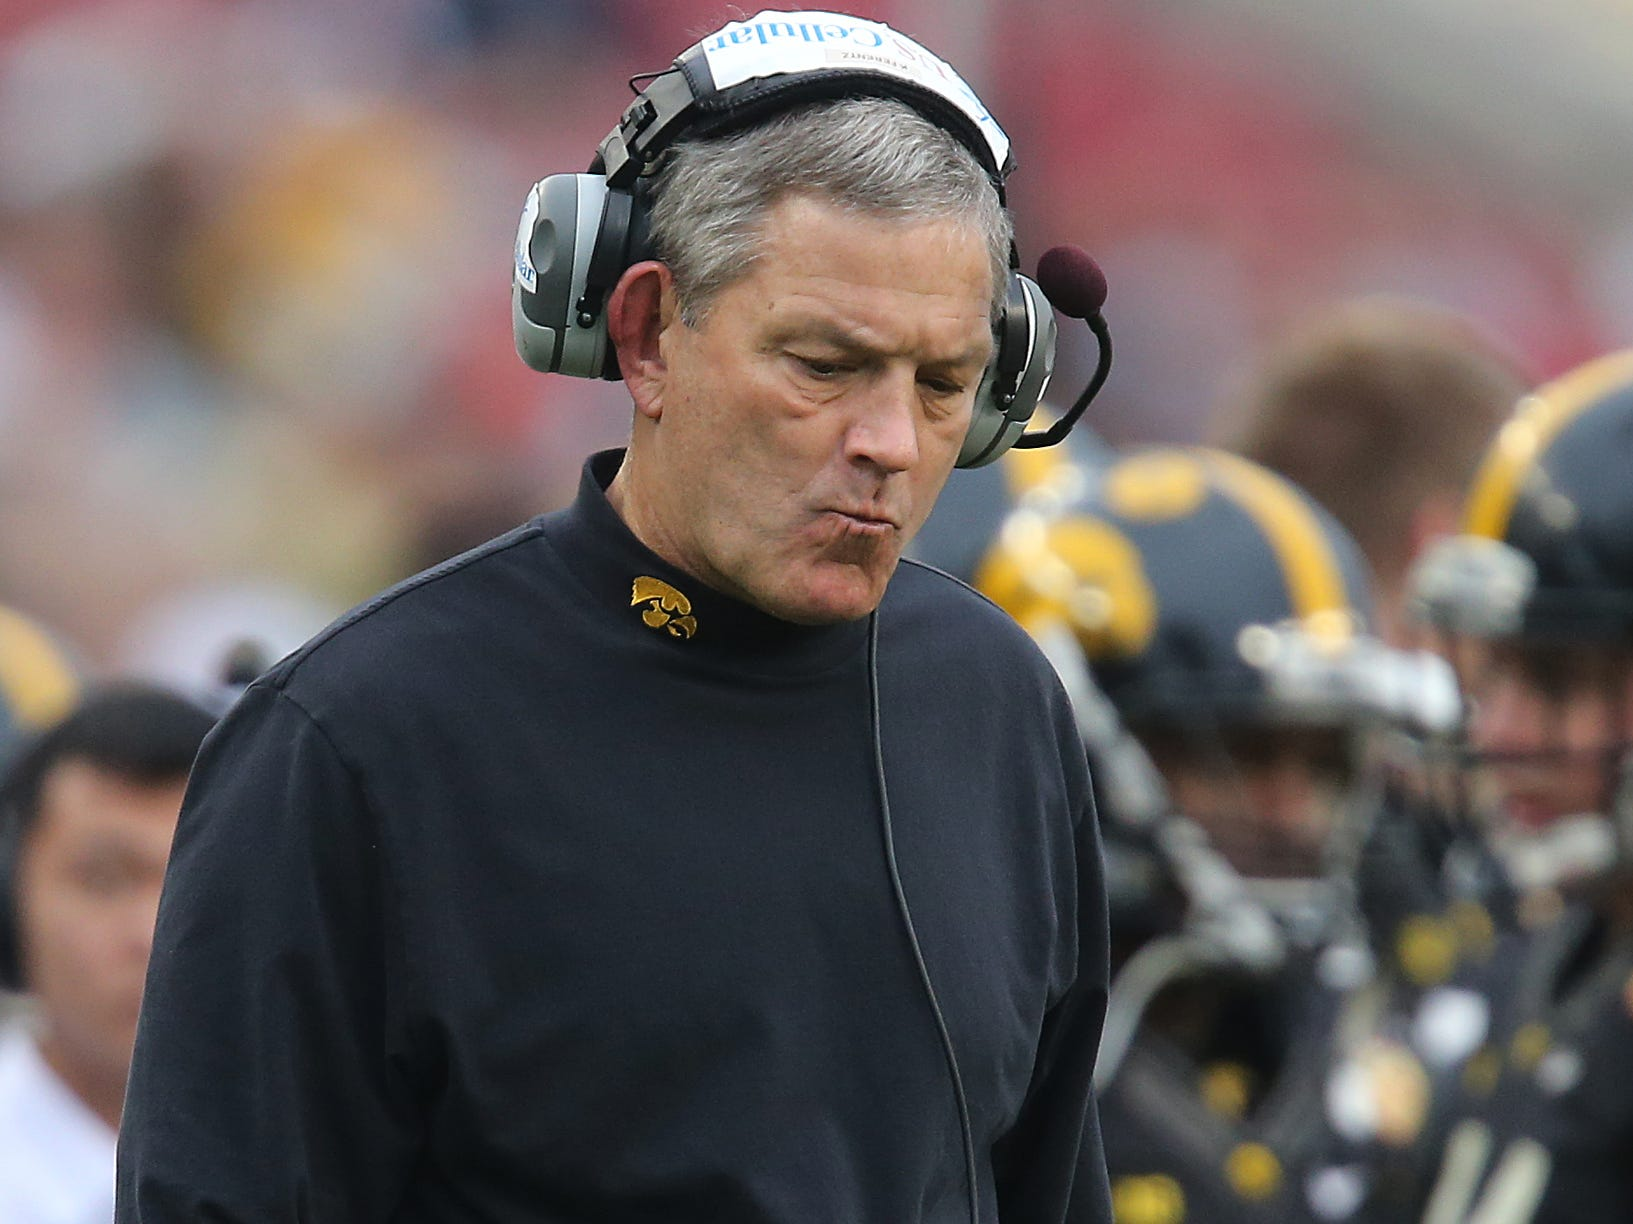 There wasn't much left Iowa coach Kirk Ferentz and the Hawkeyes could do in the final seconds as LSU held on to take a 21-14 win in the Outback Bowl on Wednesday, Jan. 1, 2014, in Tampa, Florida. (Bryon Houlgrave/The Register)